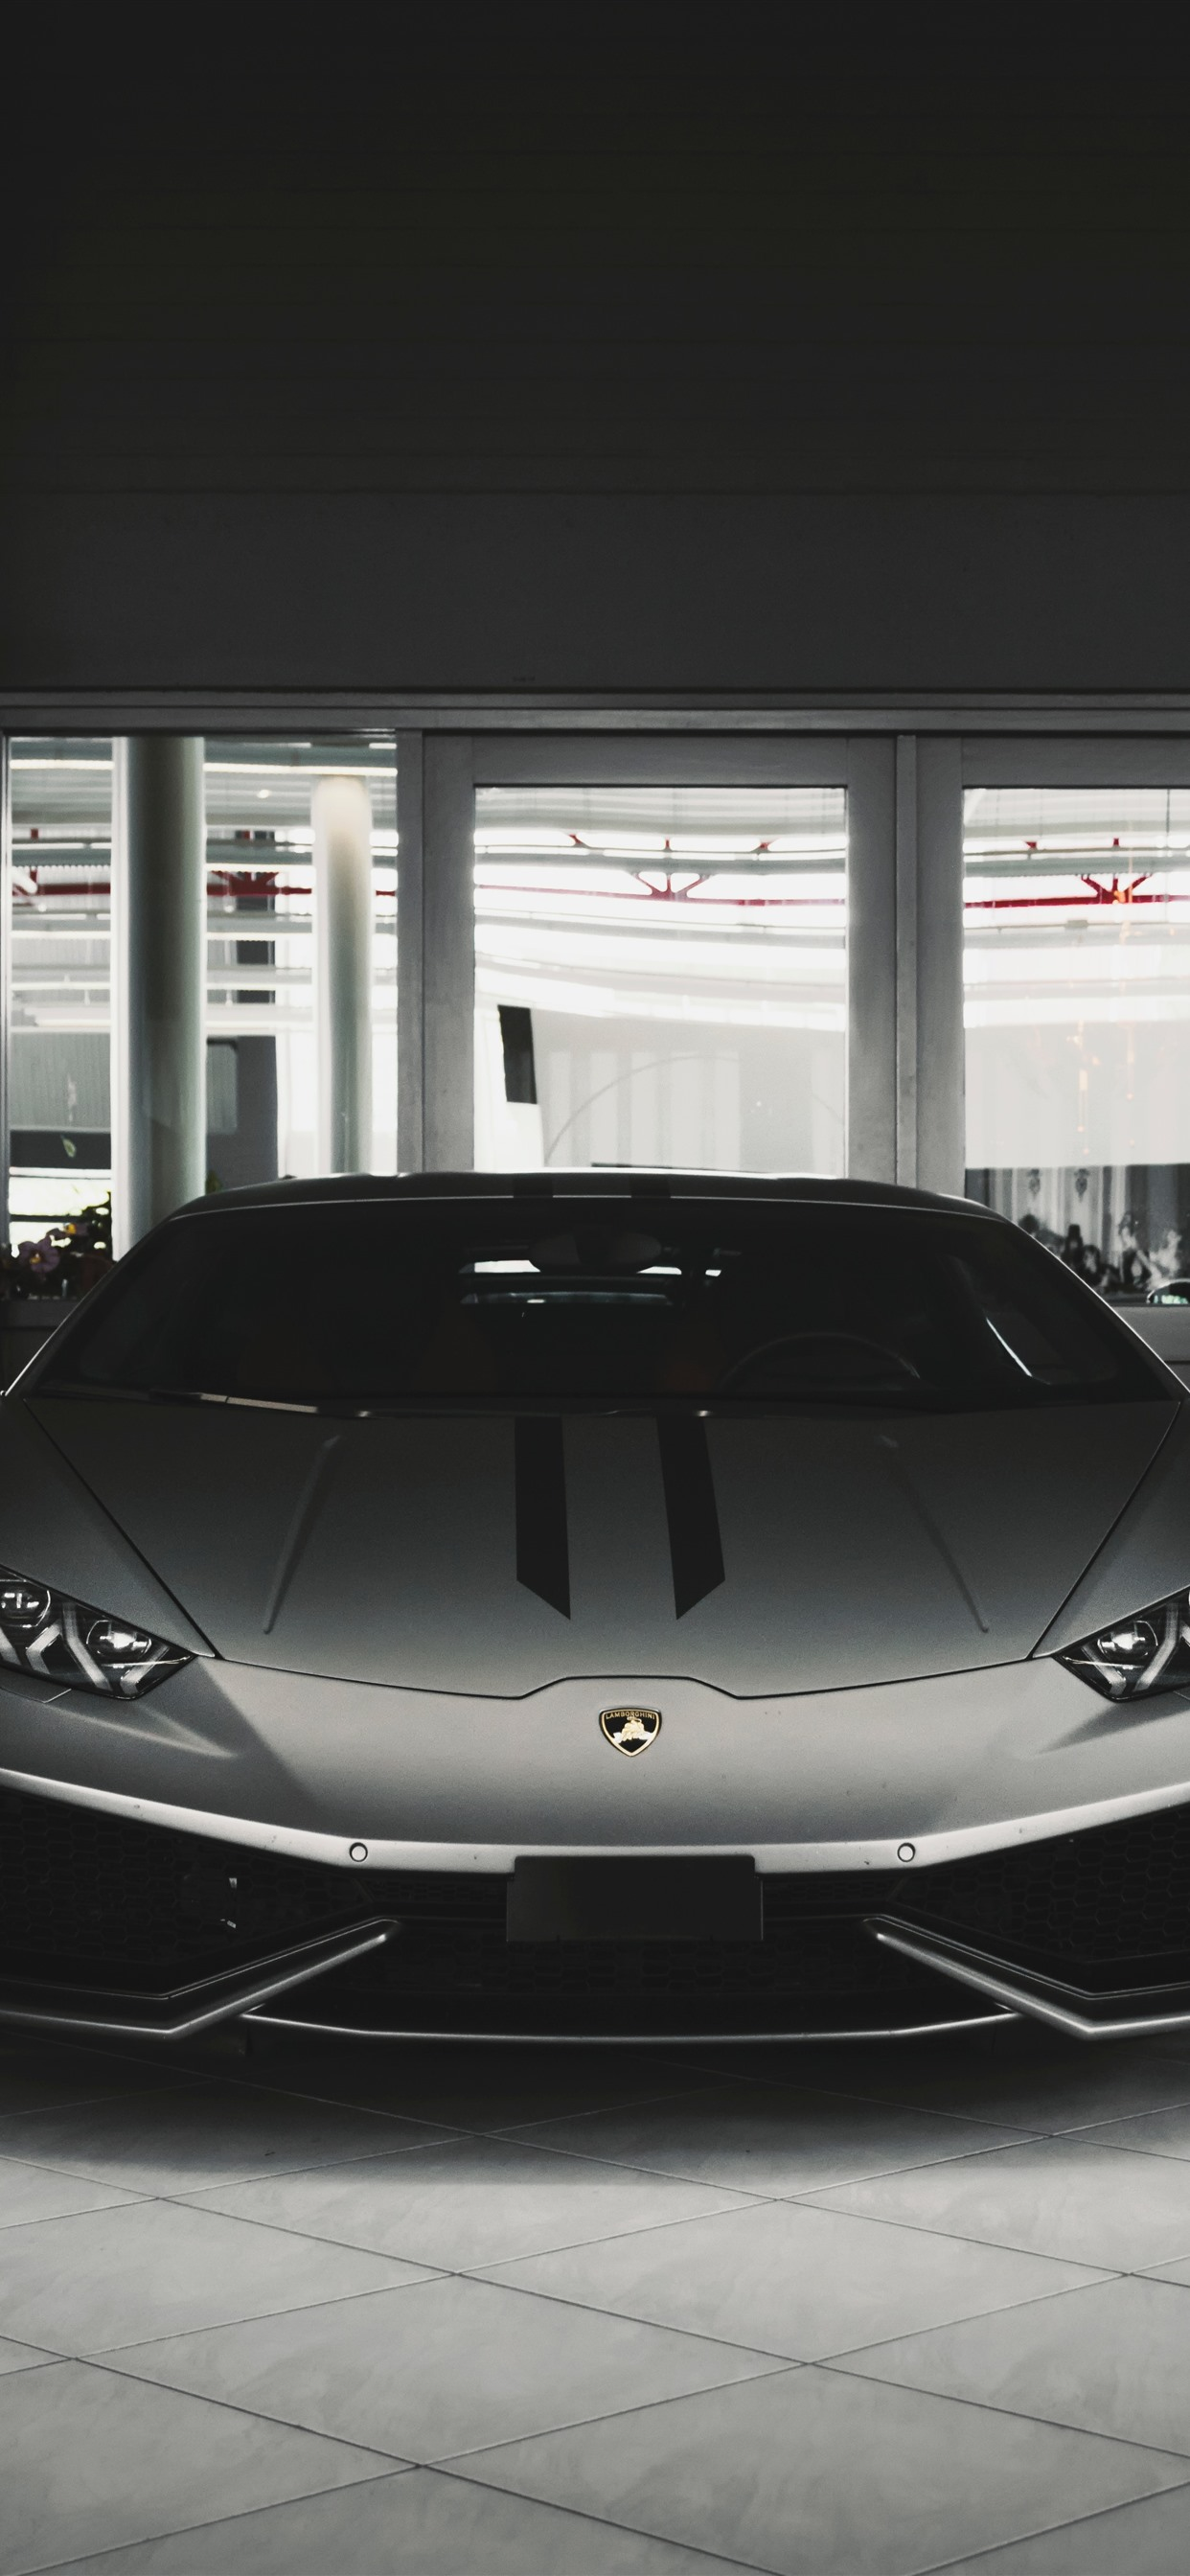 Lamborghini Silver Car Front View 1242x2688 Iphone Xs Max Wallpaper